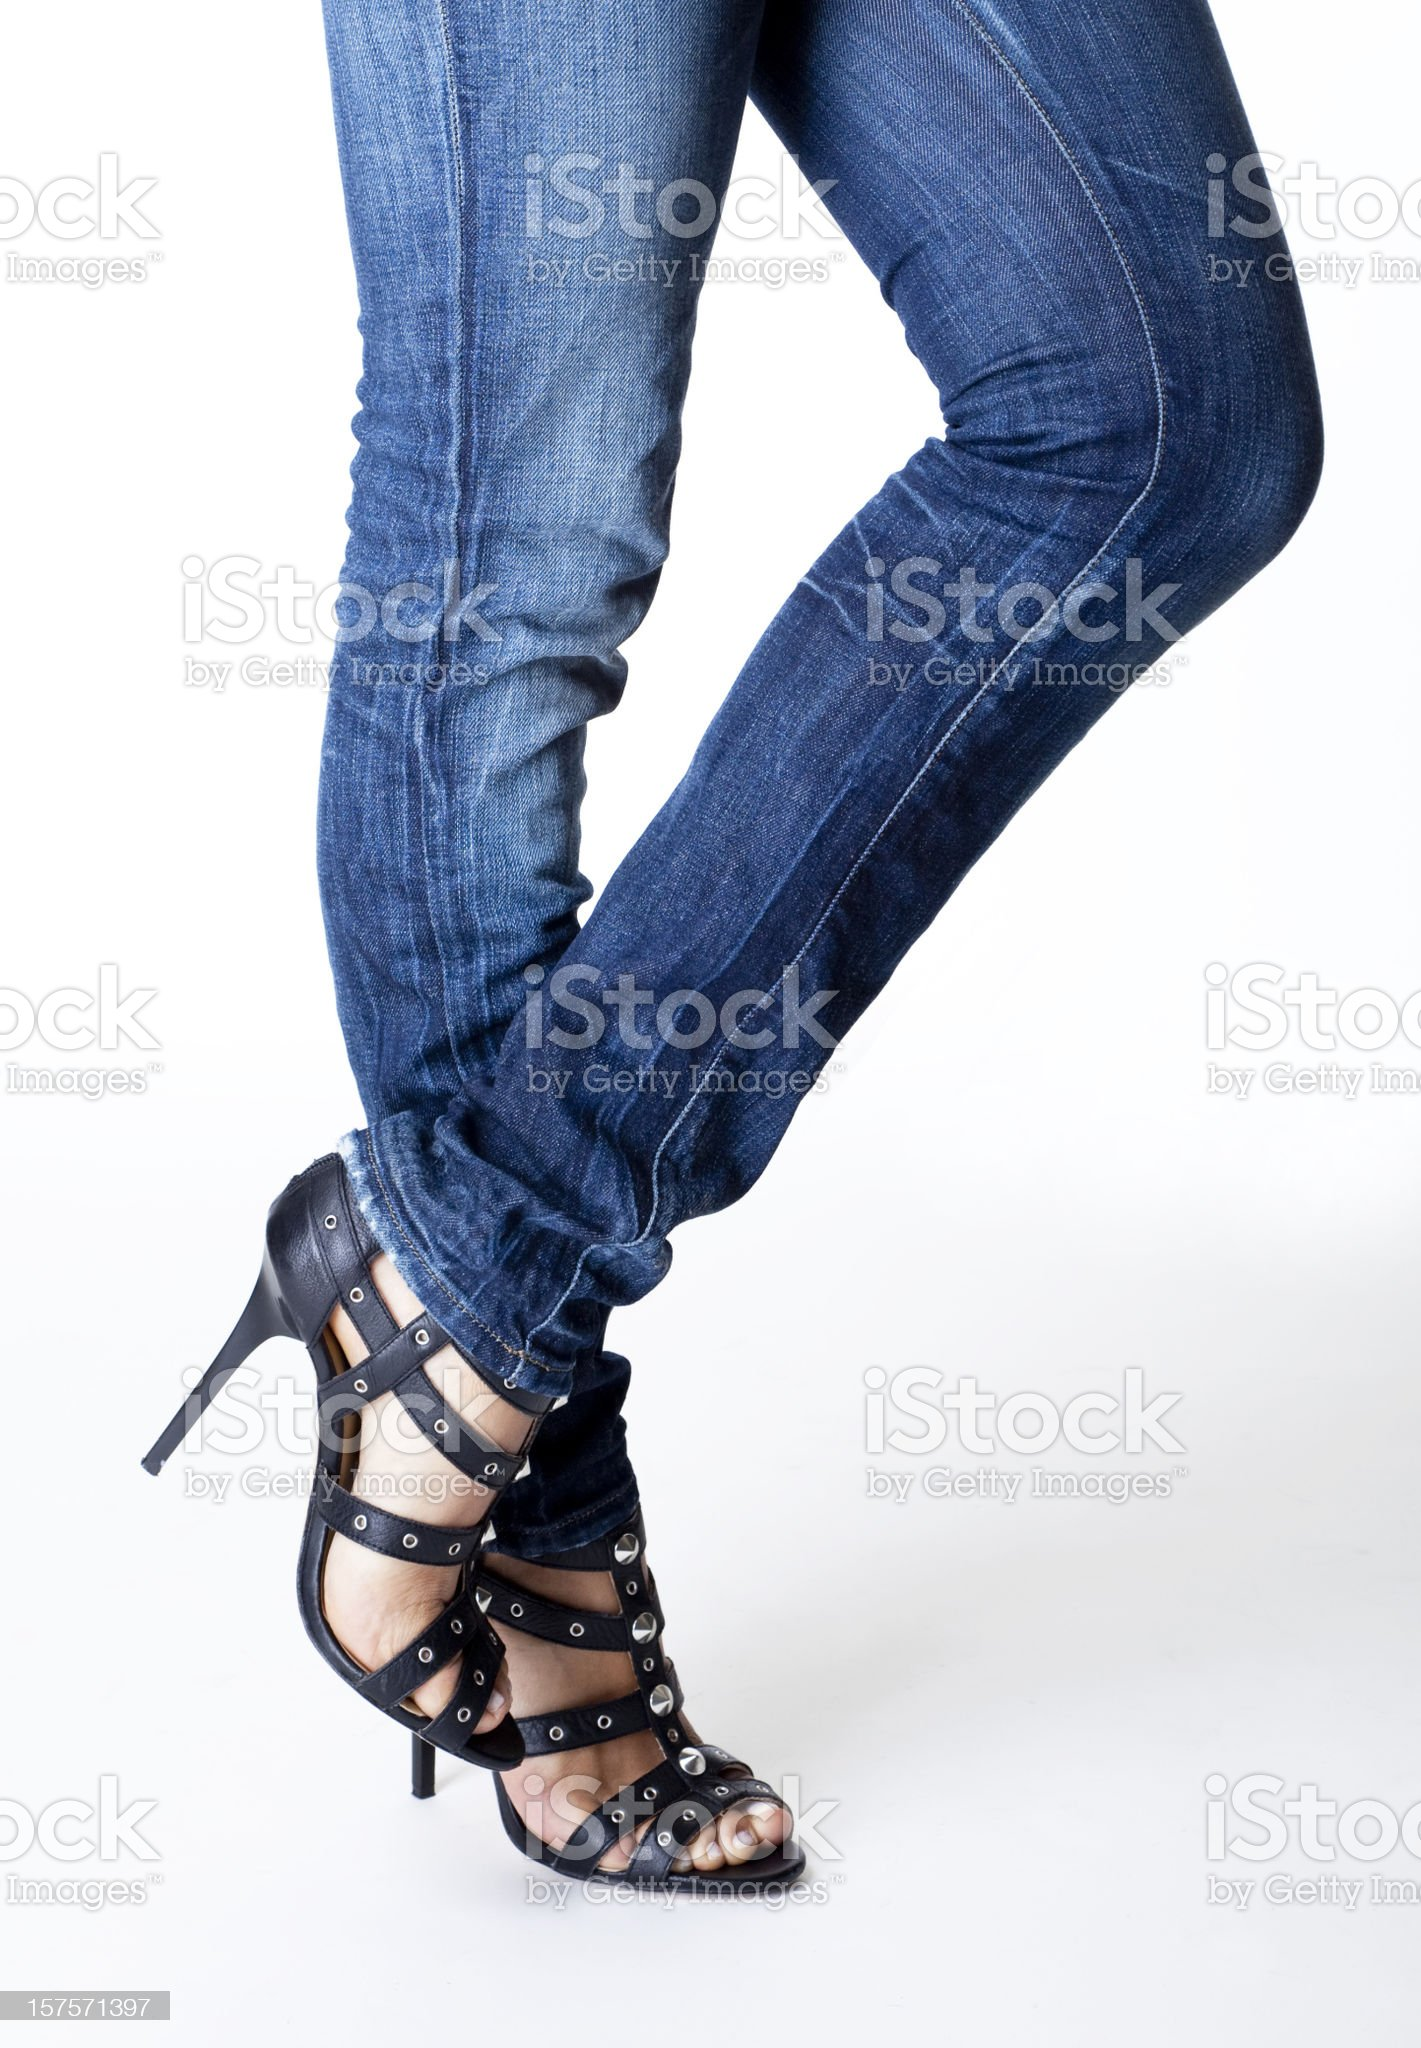 woman's legs and high heeled shoes royalty-free stock photo